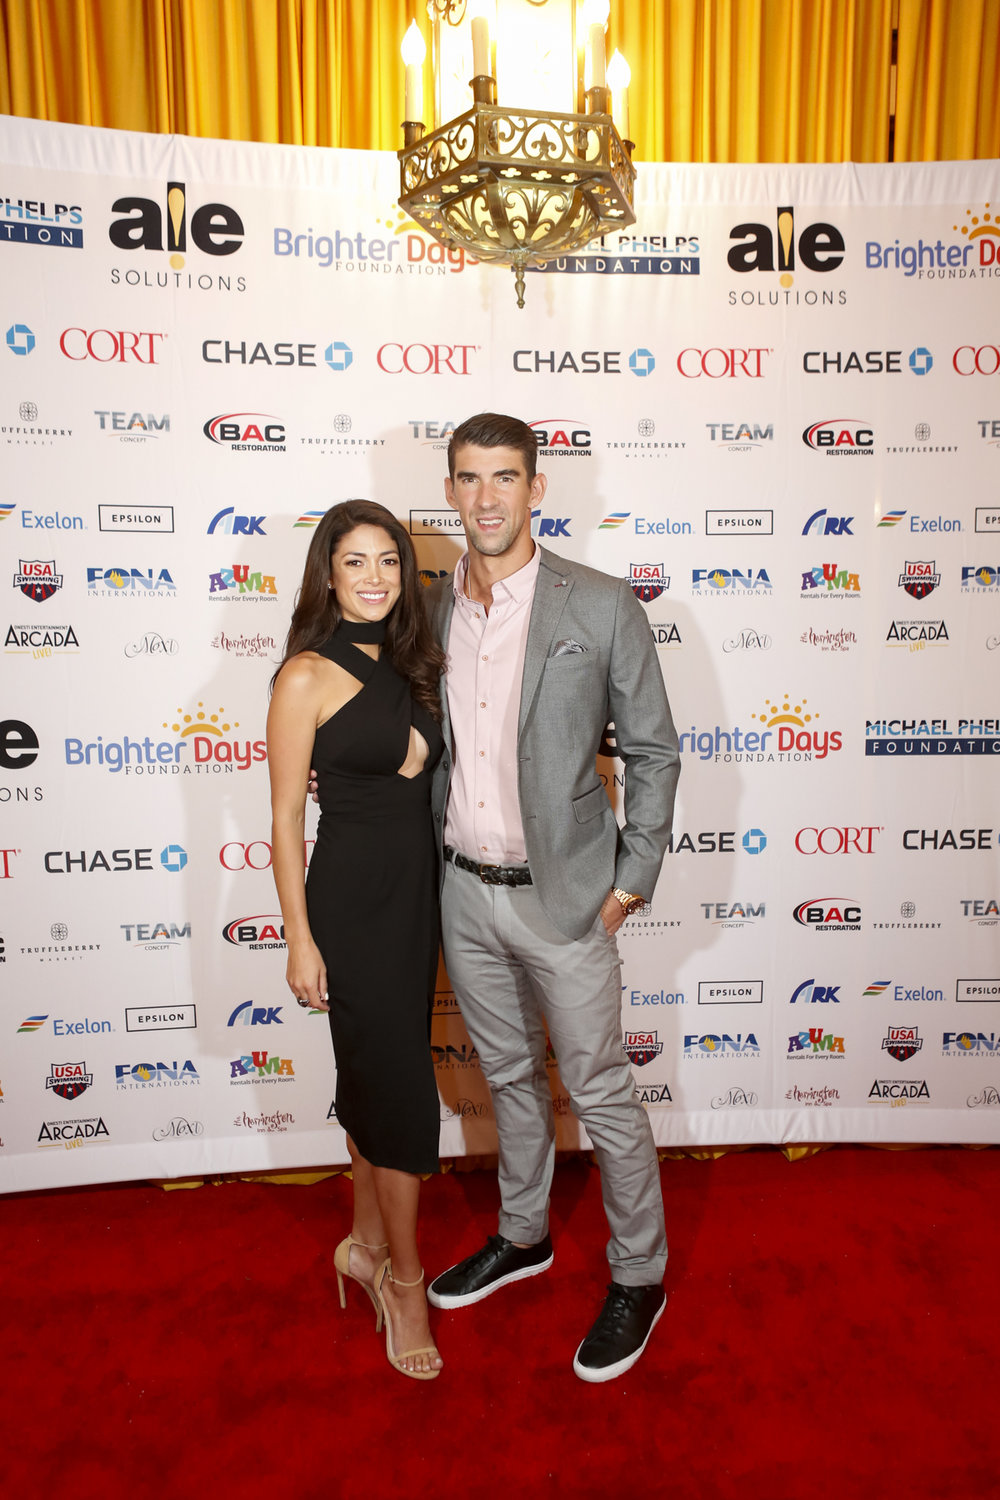 golf-give-gala-celebrity-michael-phelps-jason-day-event-photographer-madison-wi-1.jpg